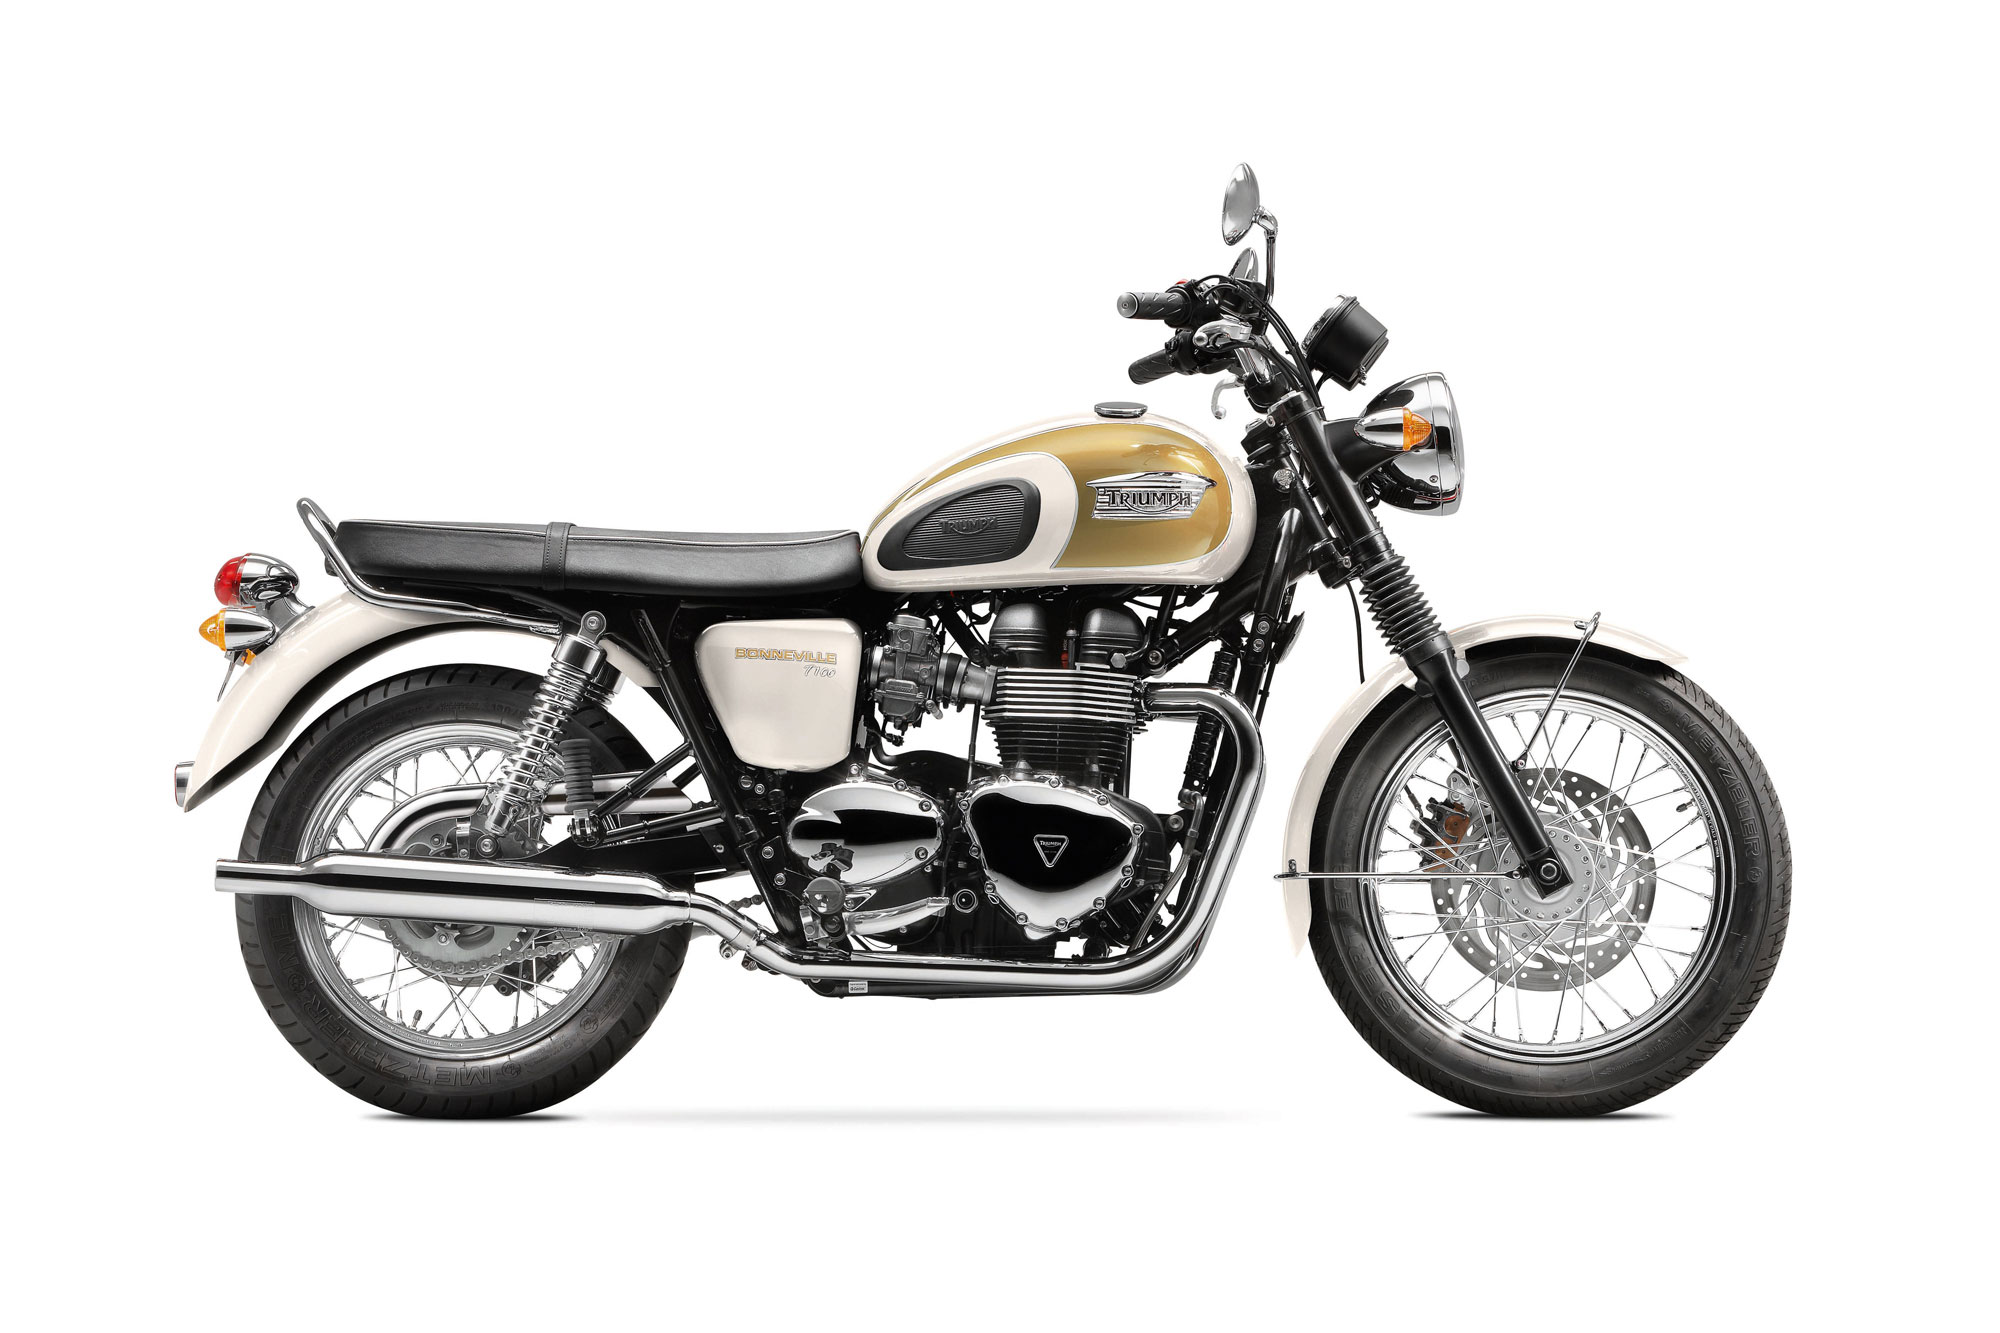 2015 triumph bonneville t100 review. Black Bedroom Furniture Sets. Home Design Ideas